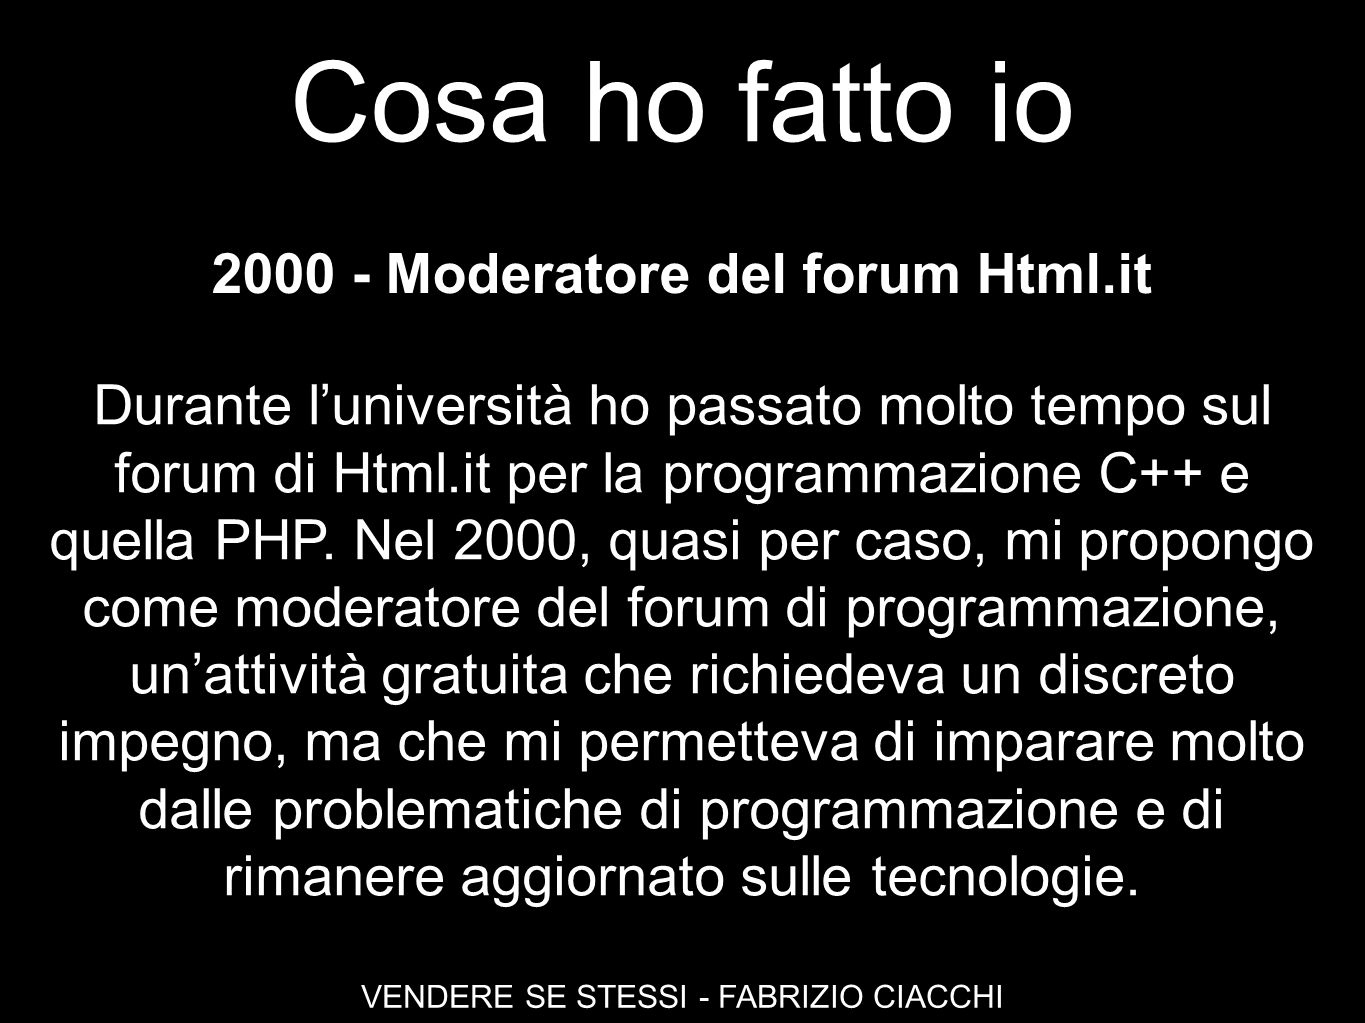 2000 - Moderatore del forum Html.it